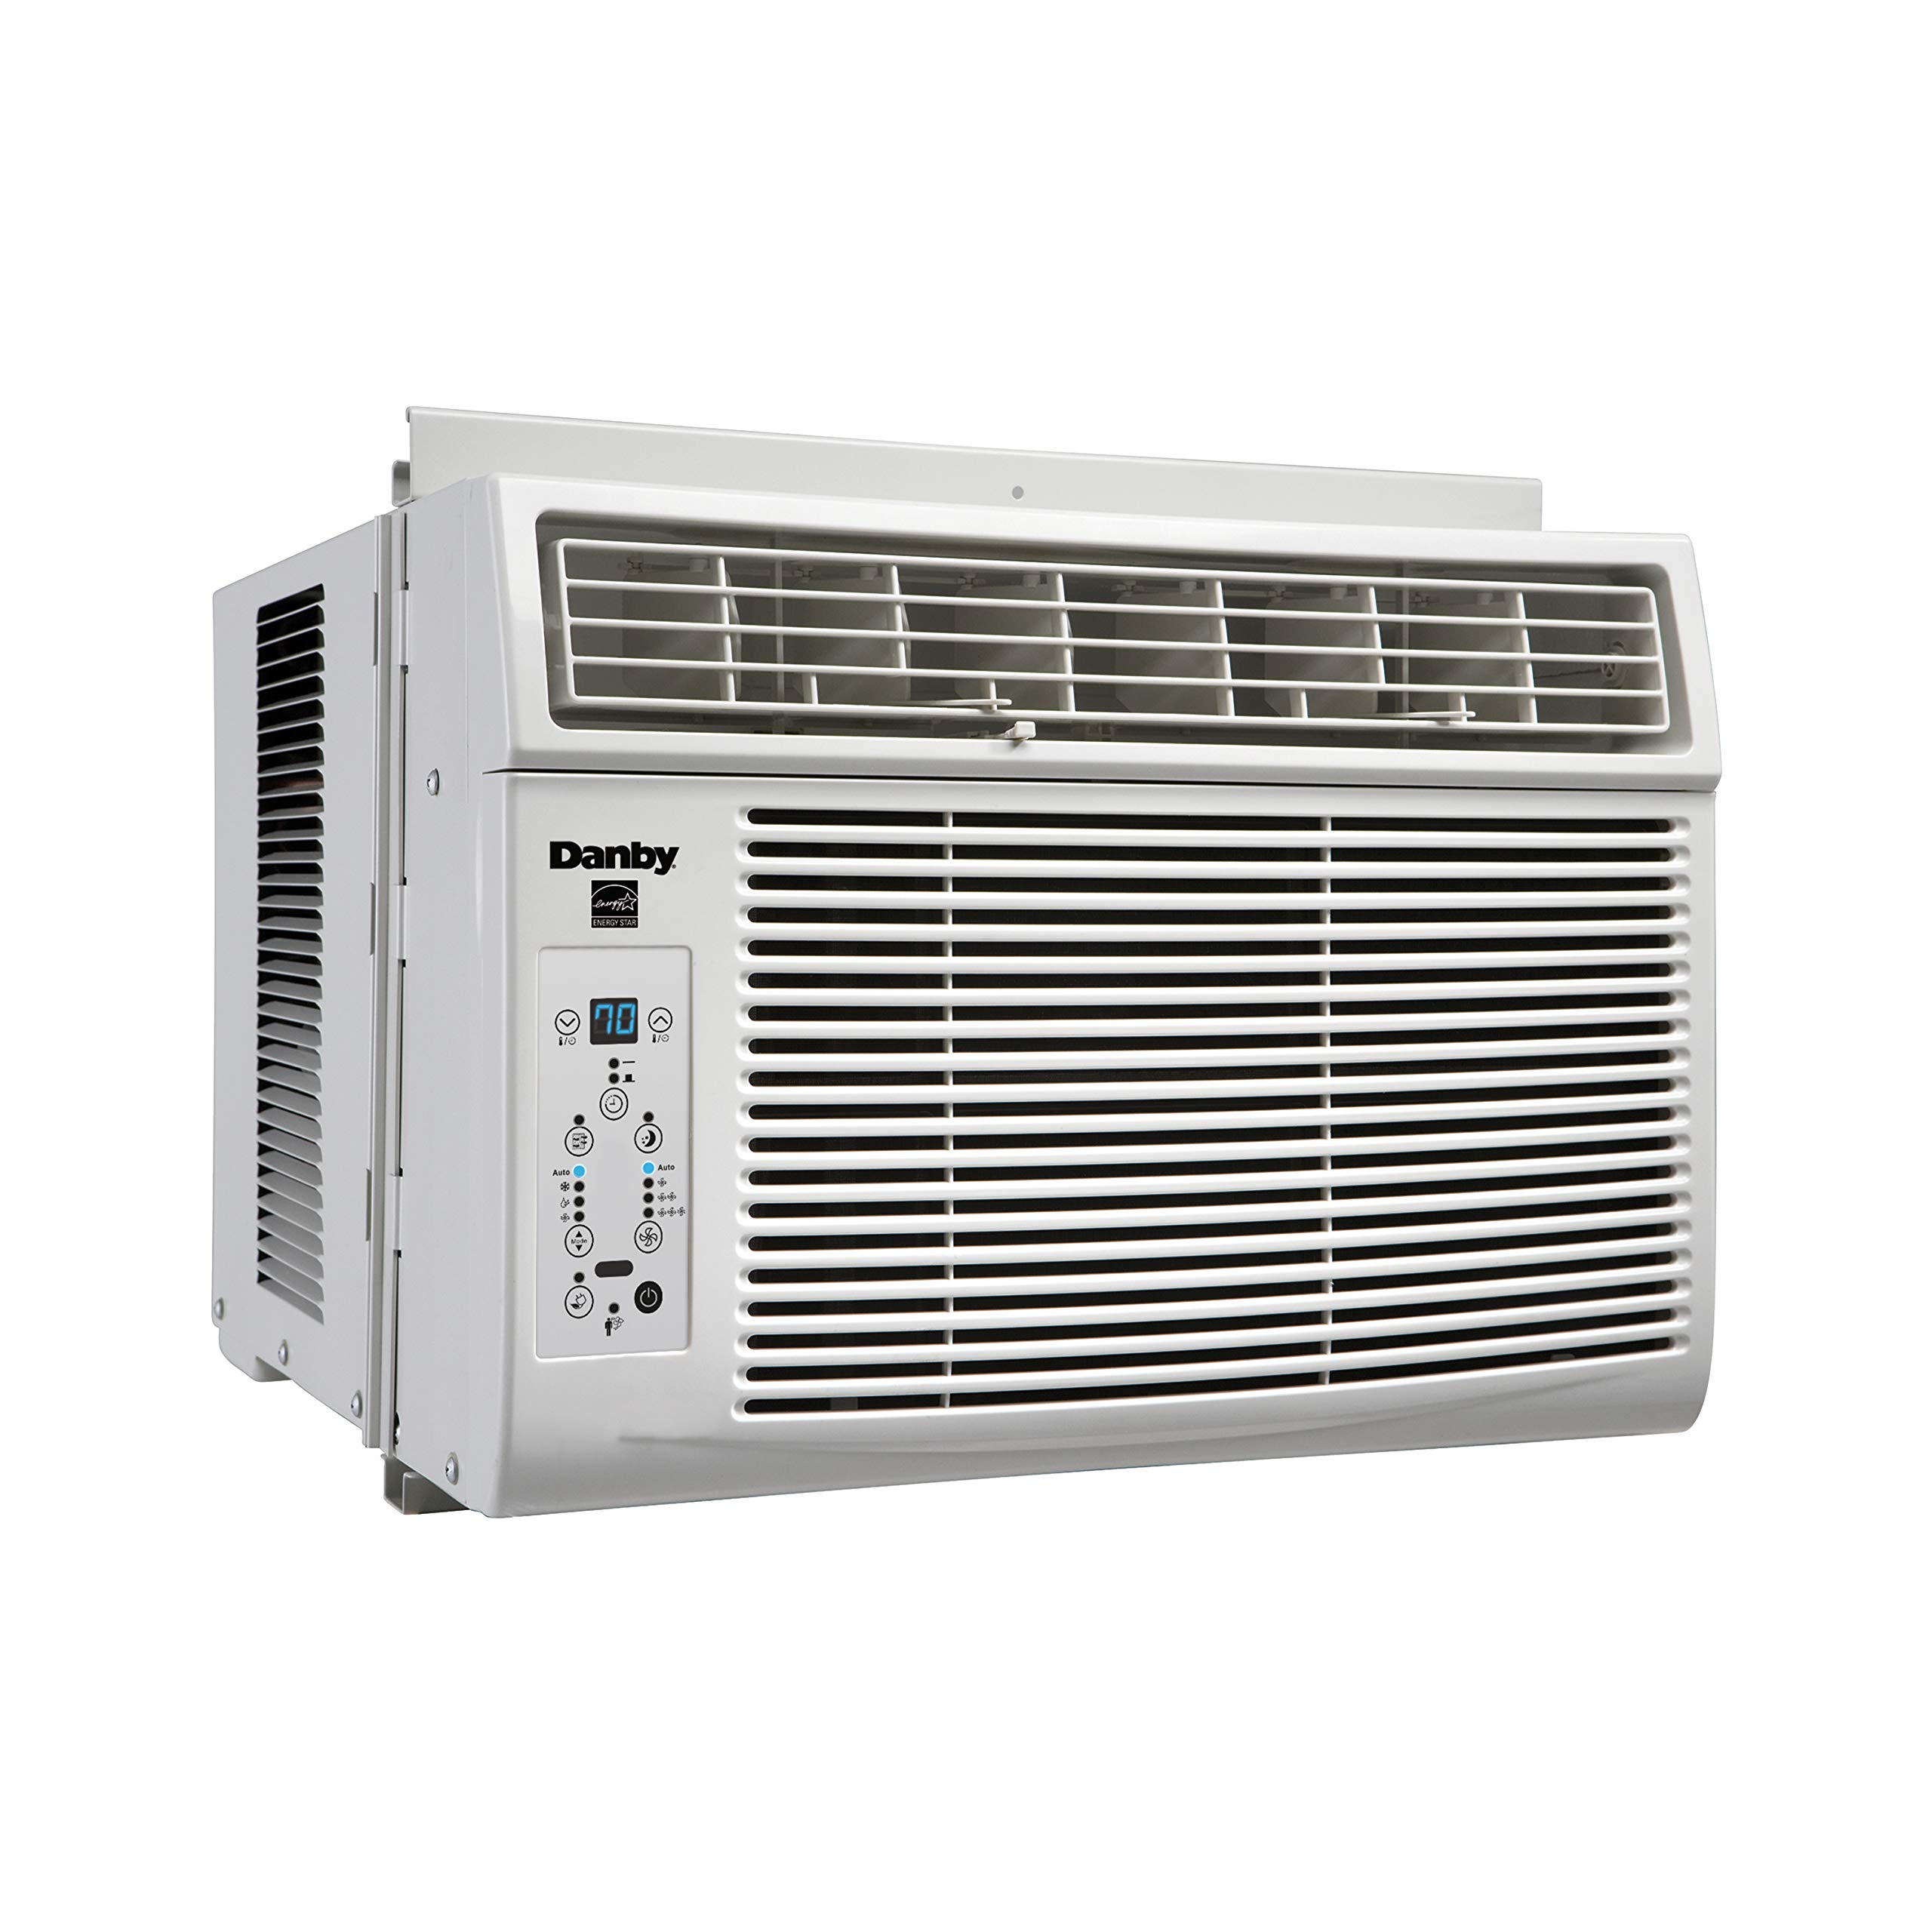 Danby 6,000 BTU Window Air Conditioner with Remote Control, White DAC060EB1WDB by Danby